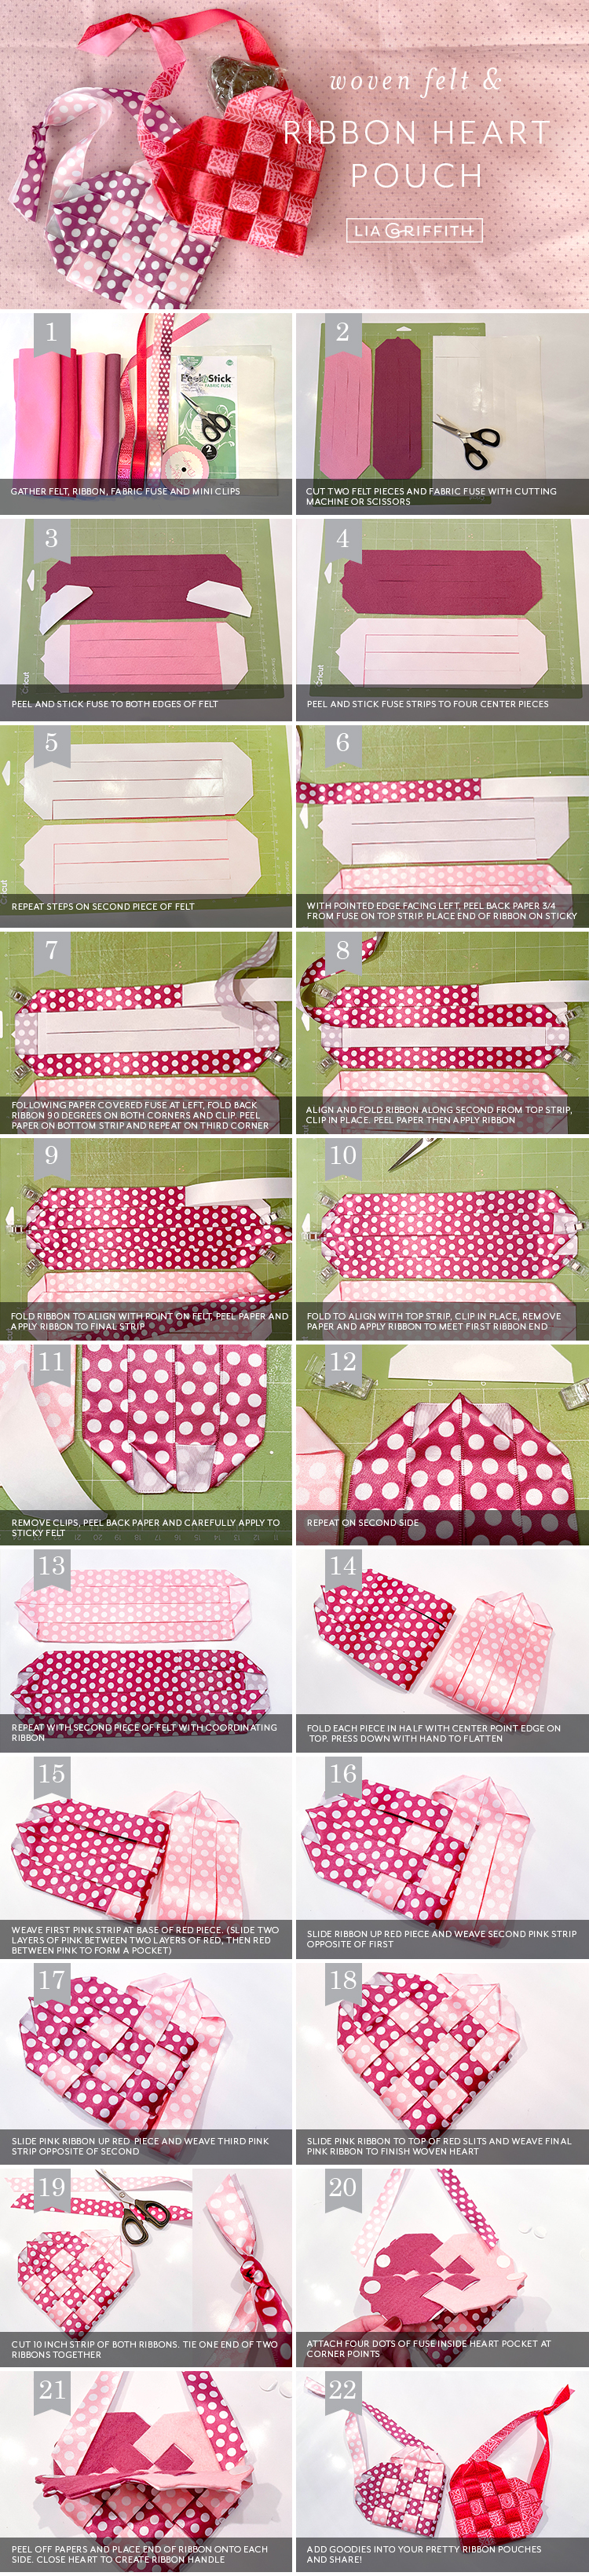 Photo tutorial for woven ribbon heart baskets by Lia Griffith